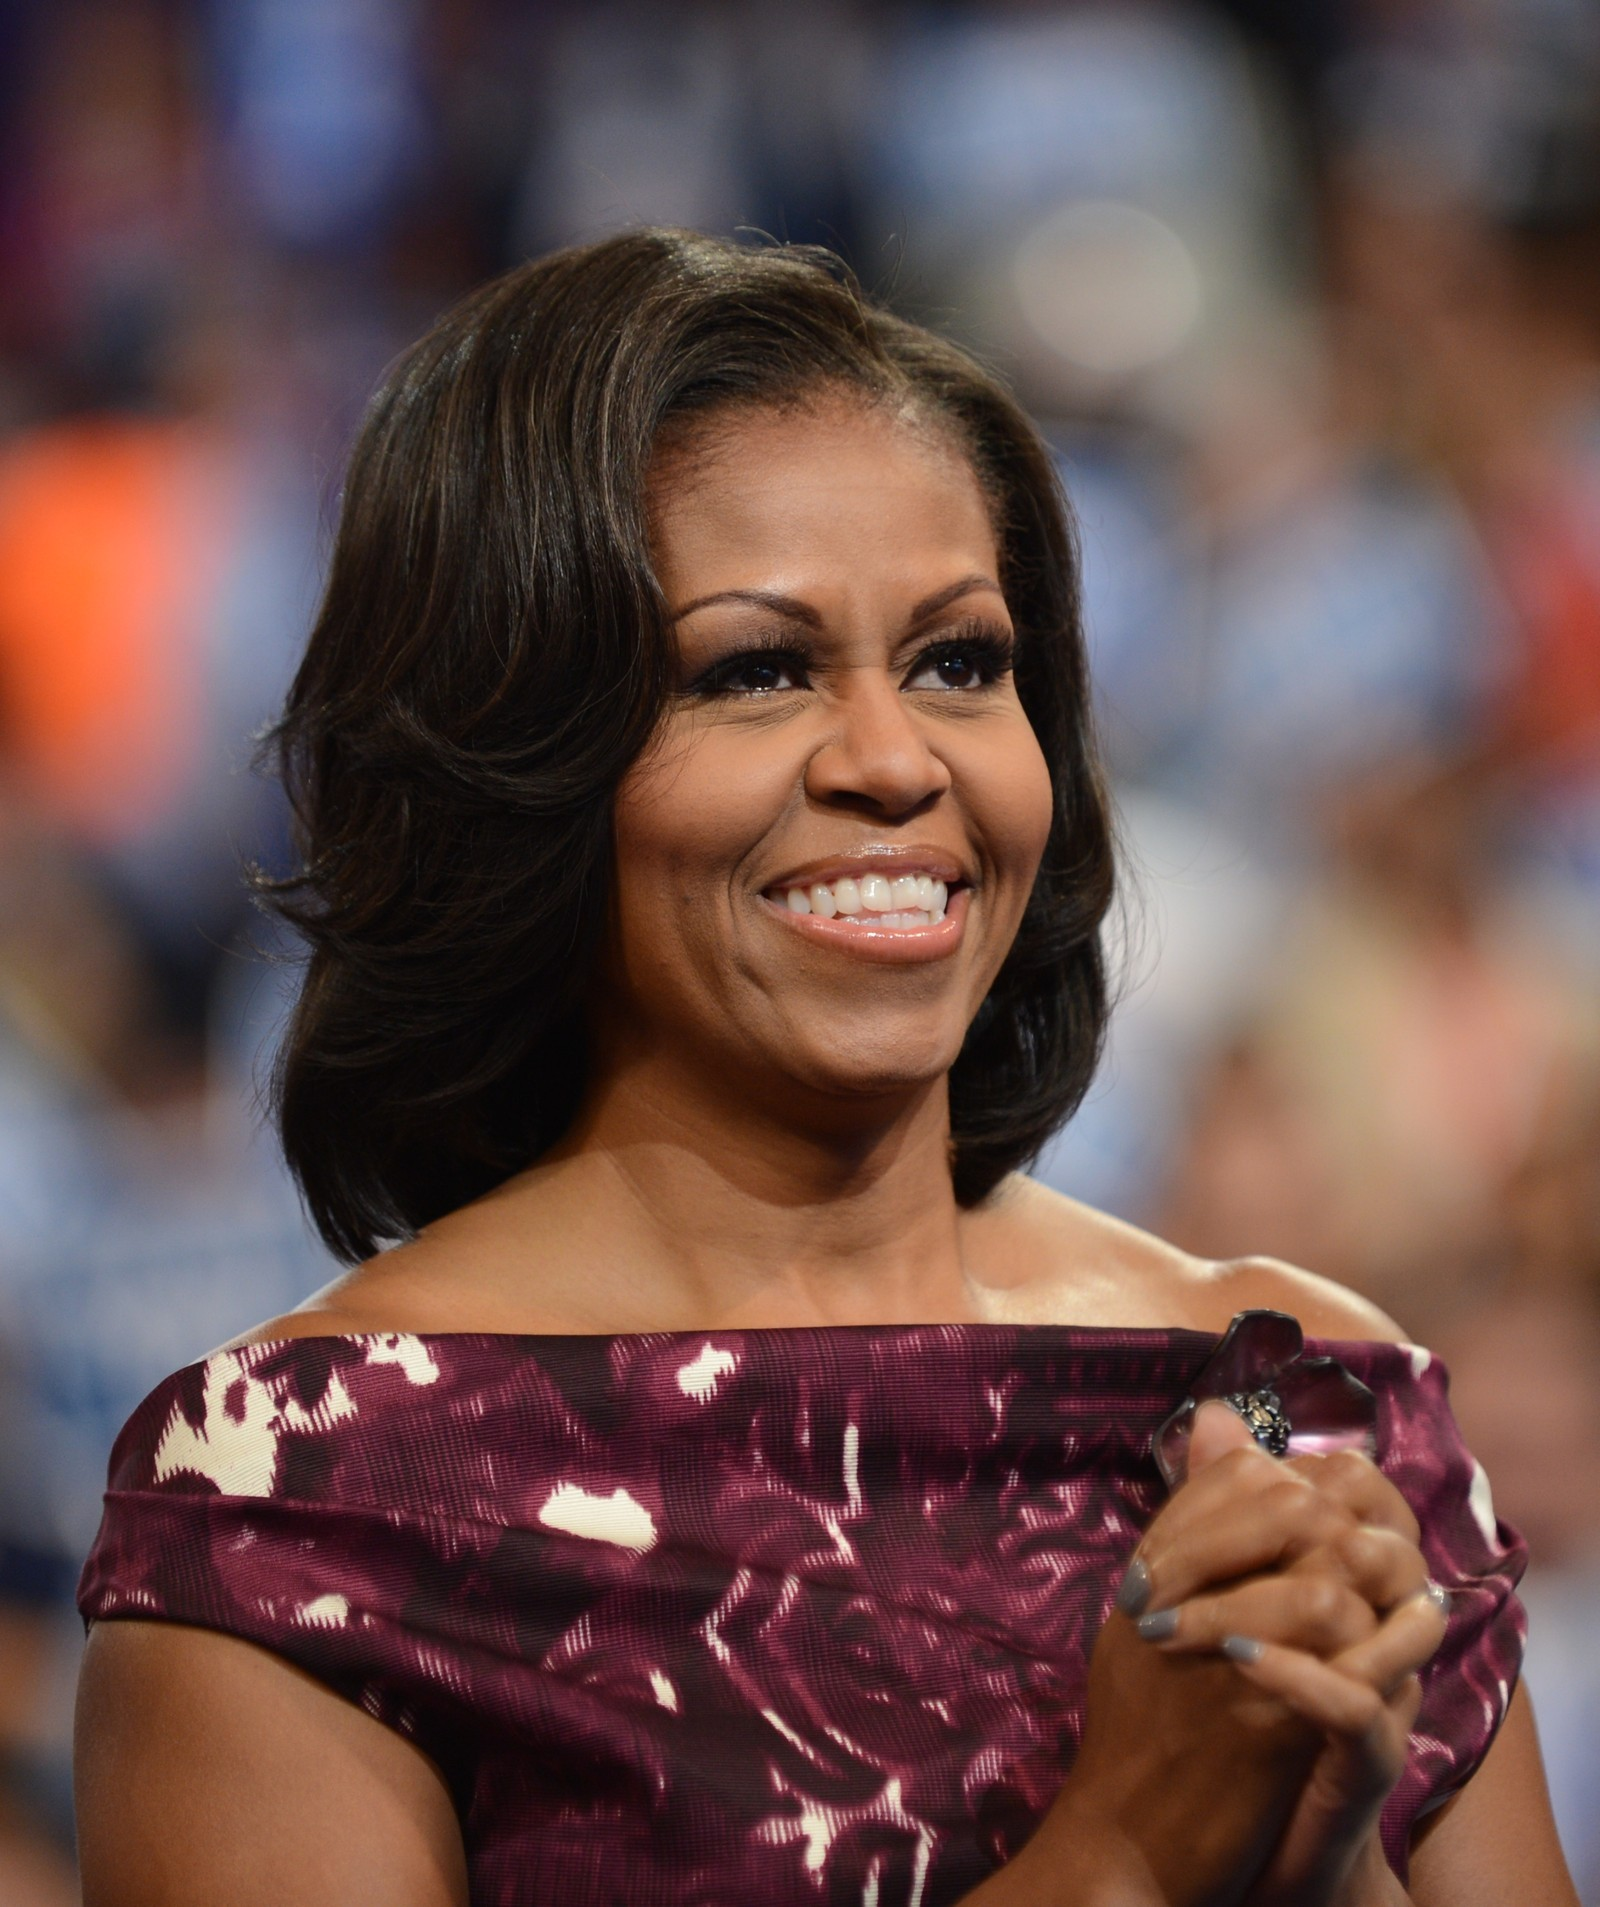 Beauty Highs Daily Top 10: Michelle Obama Wants to Shop at CVS, Leighton Meester Chopped Her Hair Off, More